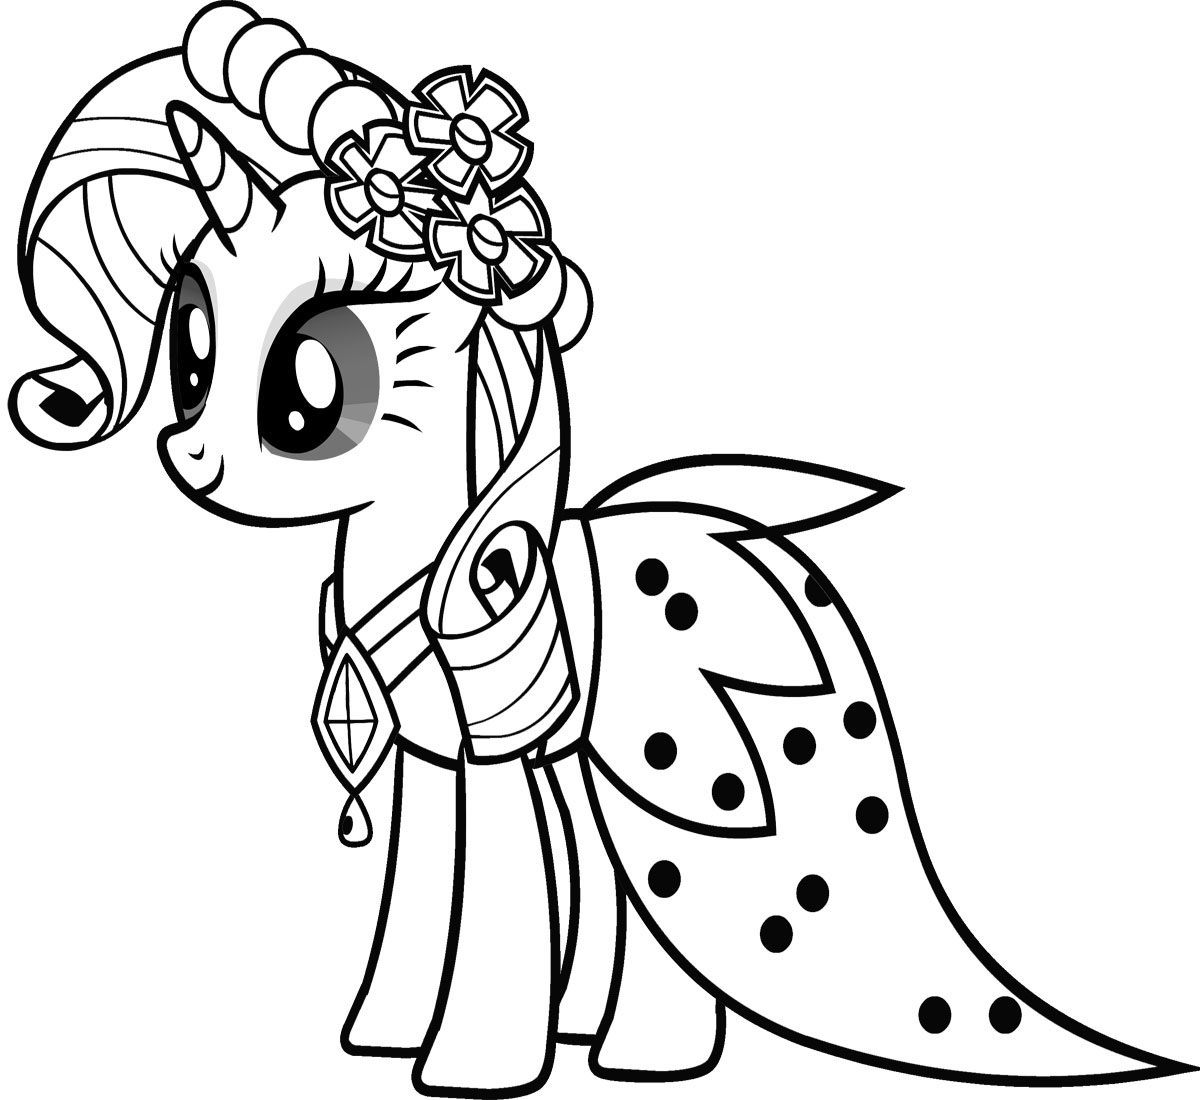 My little pony coloring pages bases - My Little Pony Coloring Pages Bases 54